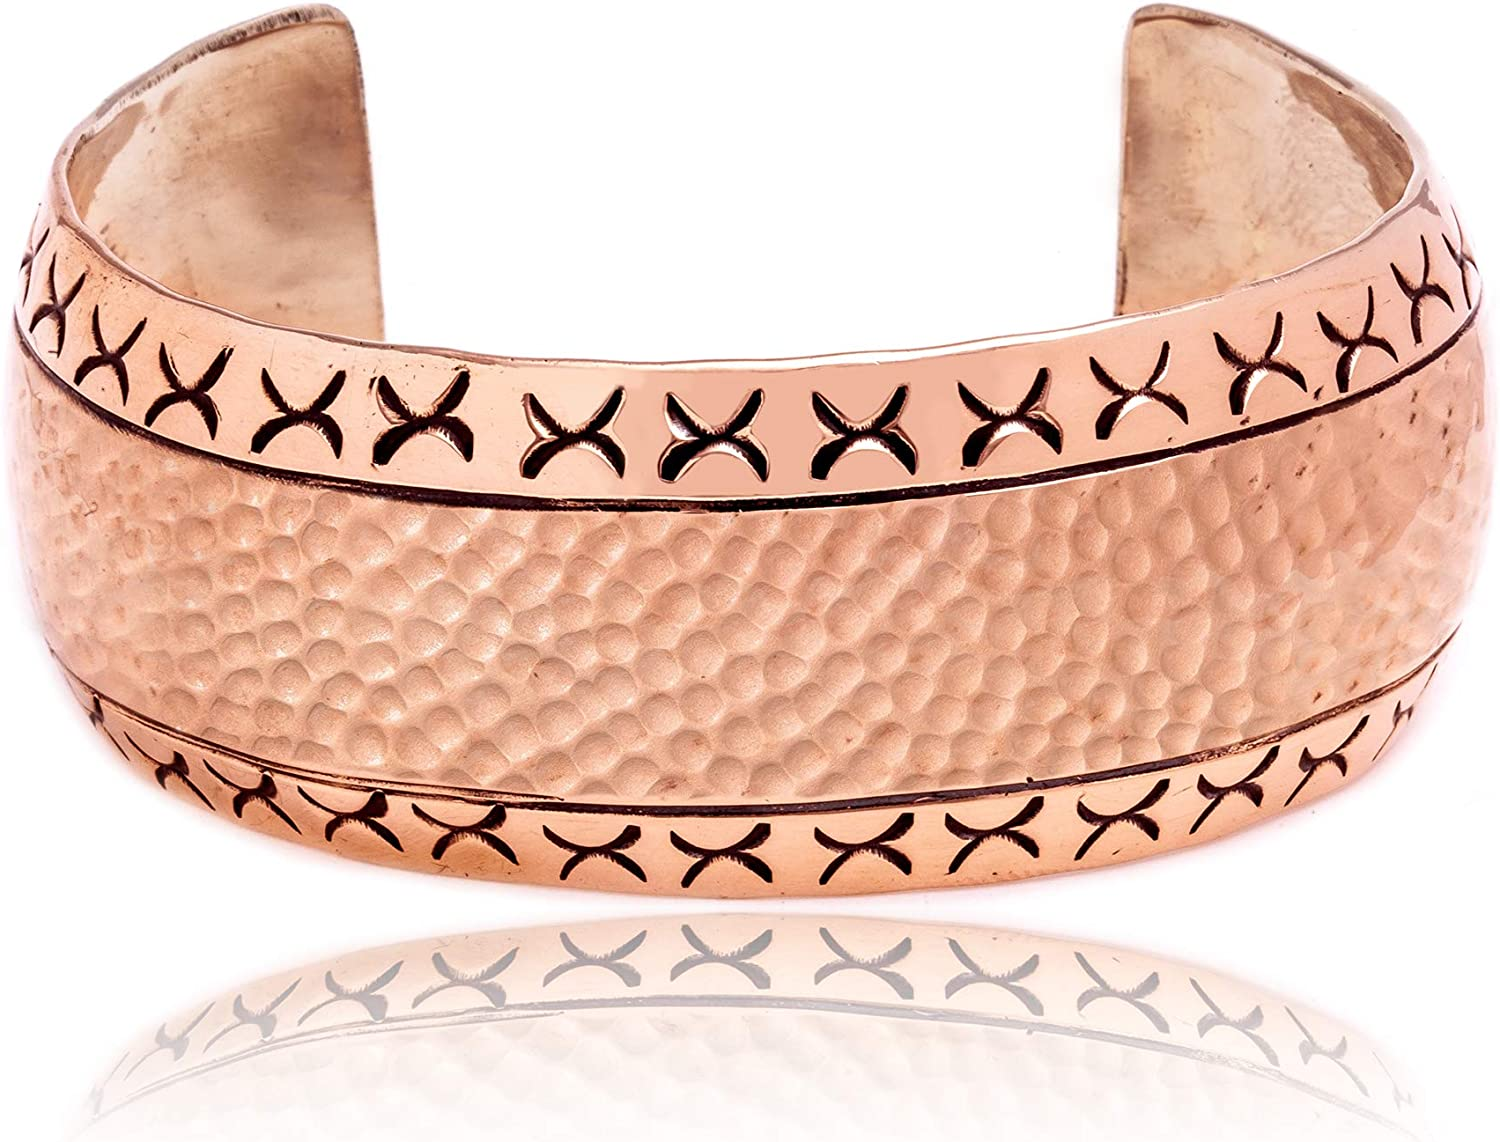 $150Tag Hammered Copper Certified Navajo Native American Cuff Bracelet 12939 Made by Loma Siiva